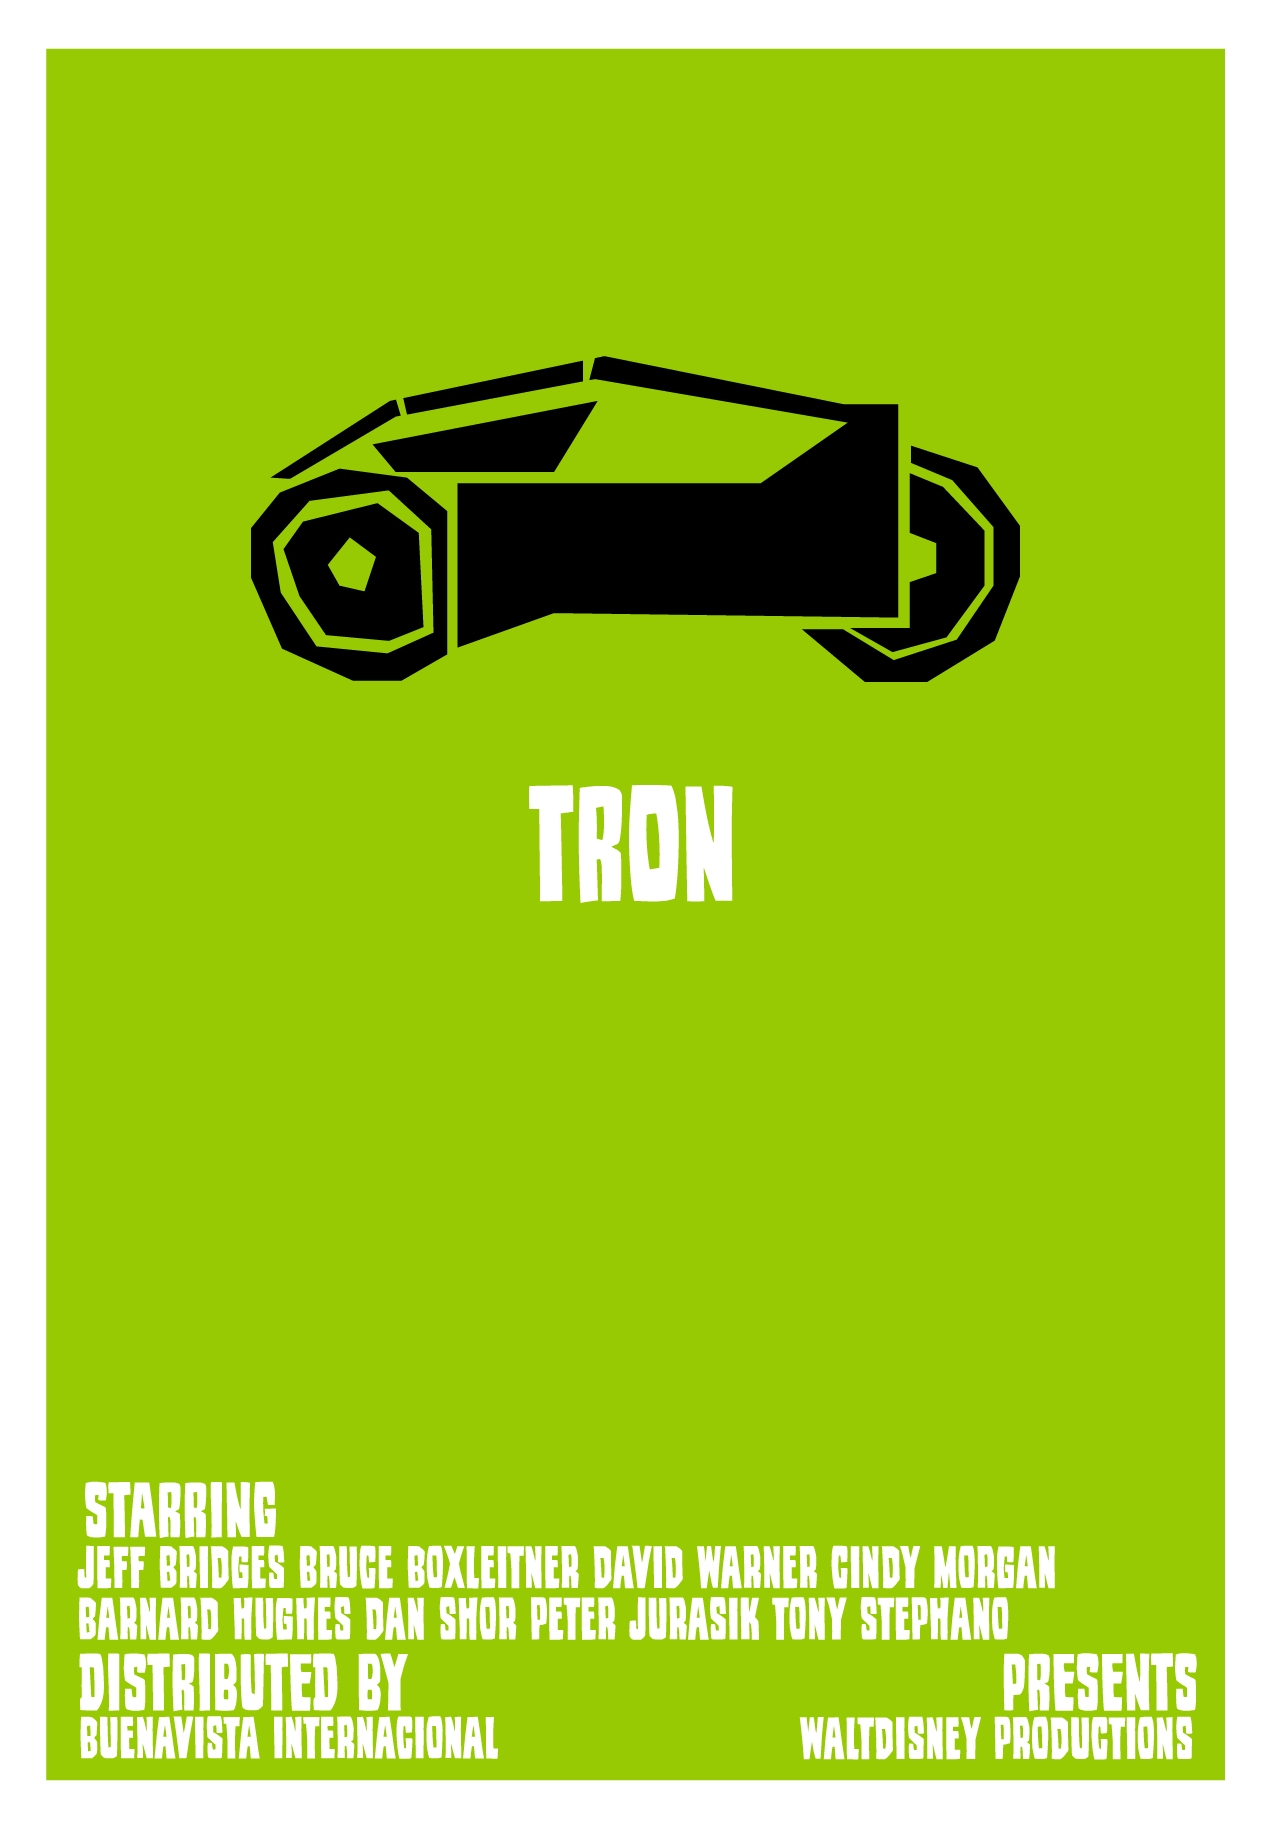 tron_posters_2020_2